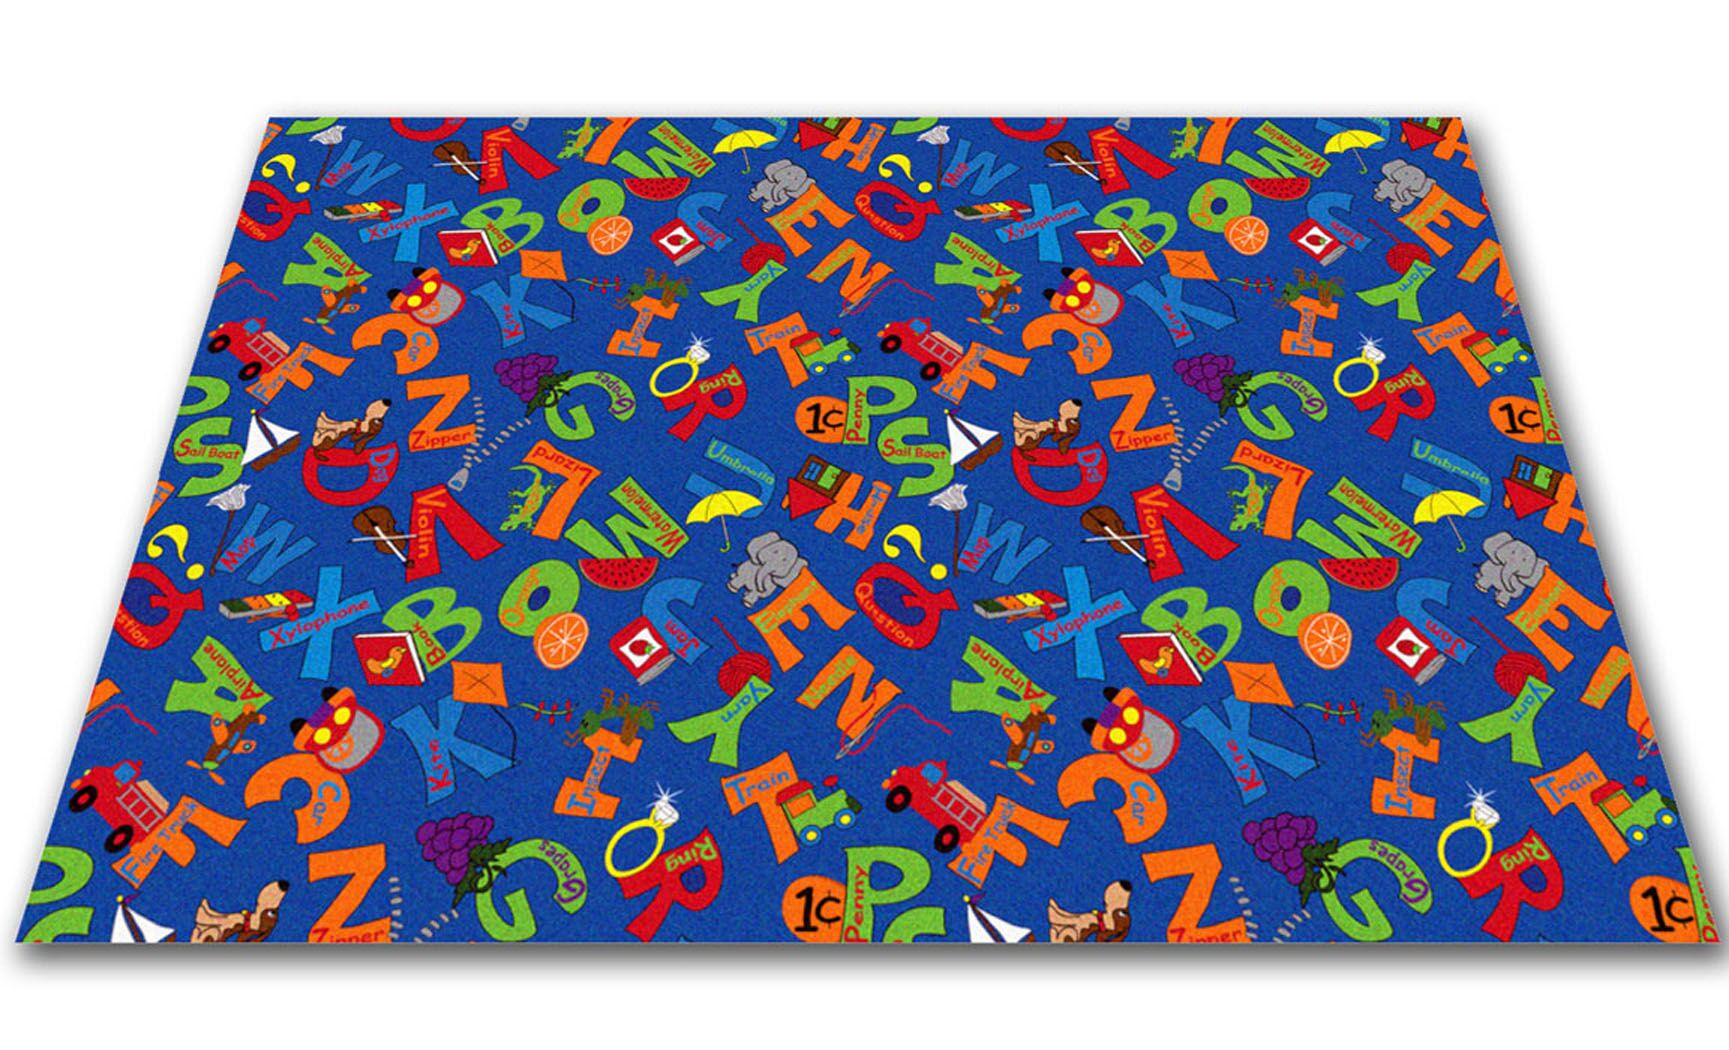 I Know My ABC's Children's Bluei Area Rug Rug Size: Rectangle 8' x 12'